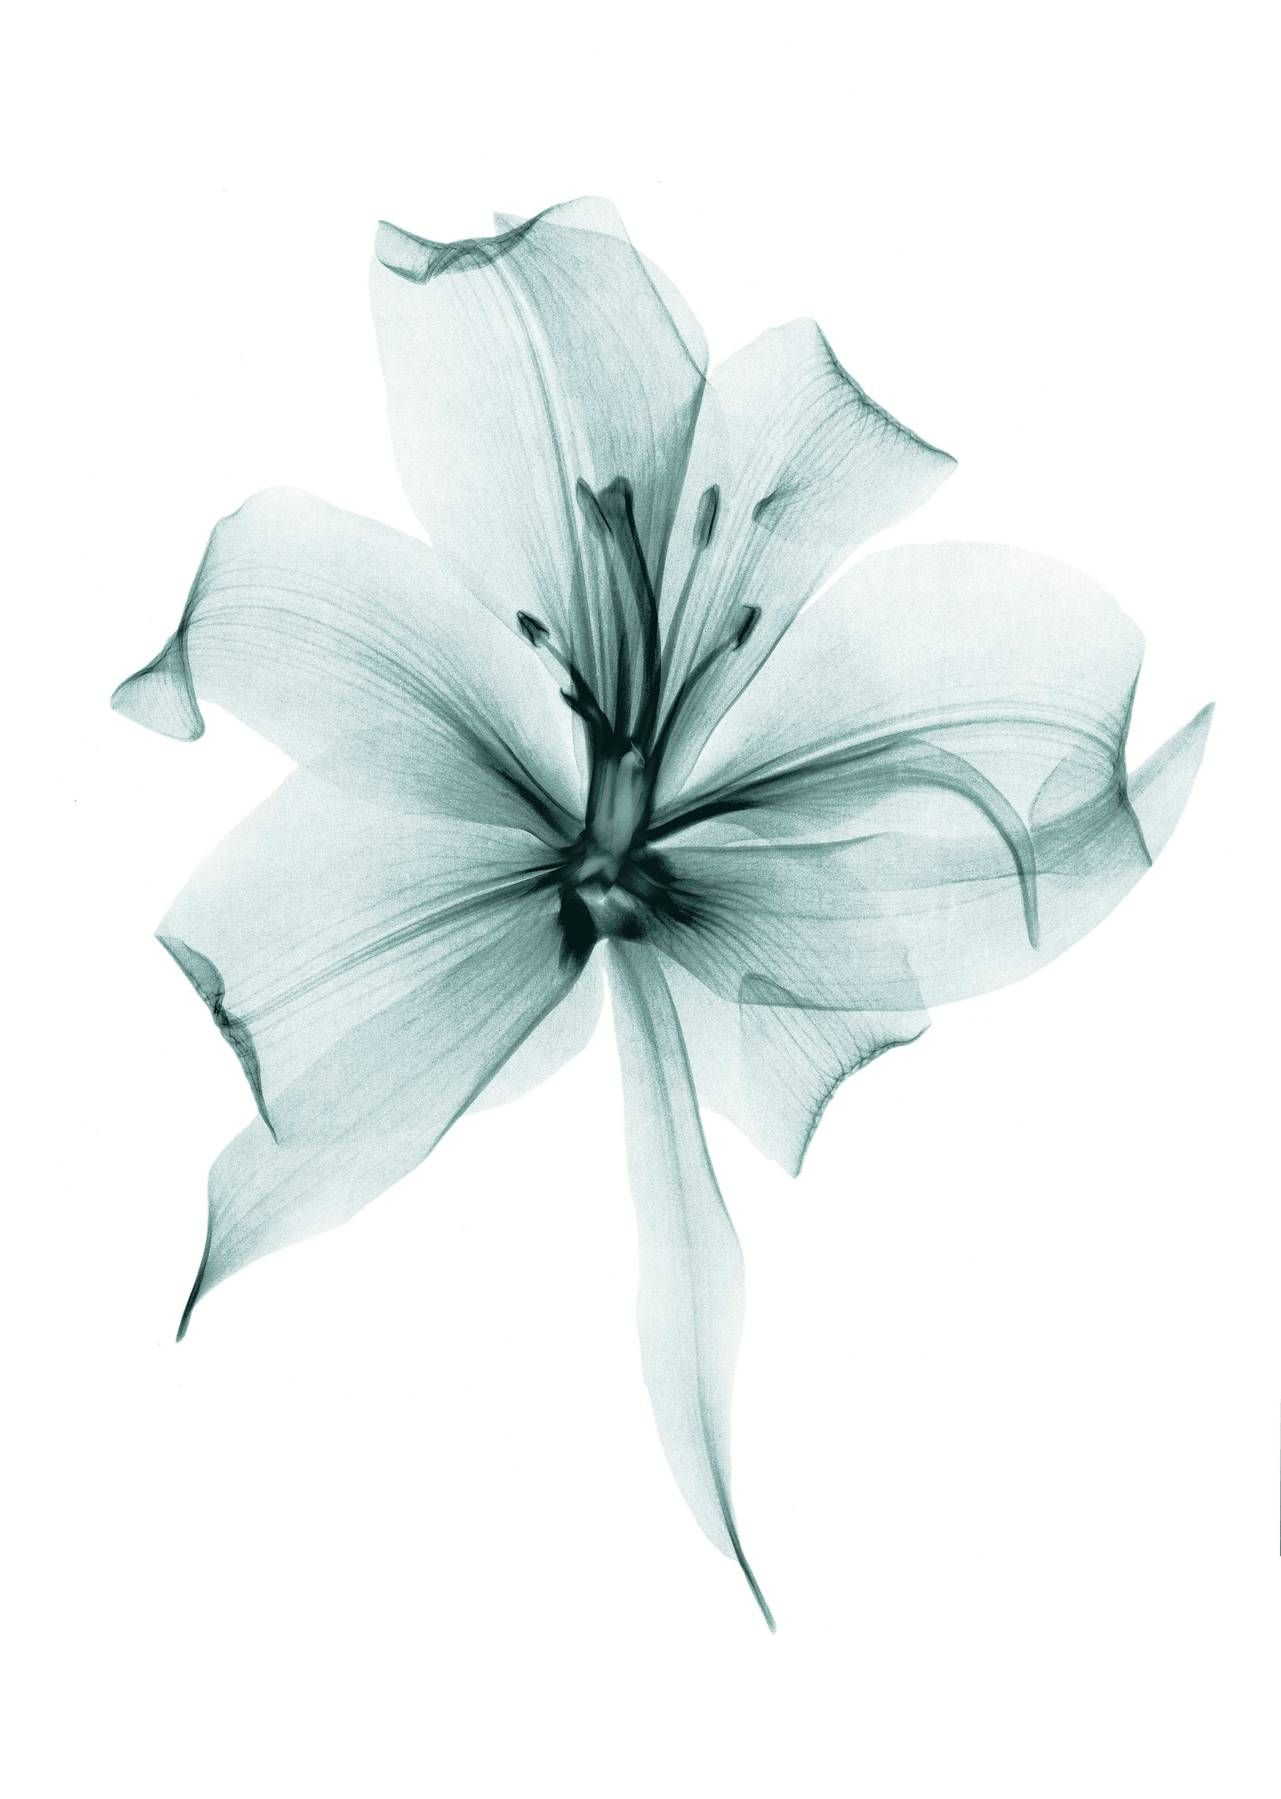 Xray Flower Prints Hello Spring Lush Inspiring Images Of The Season To